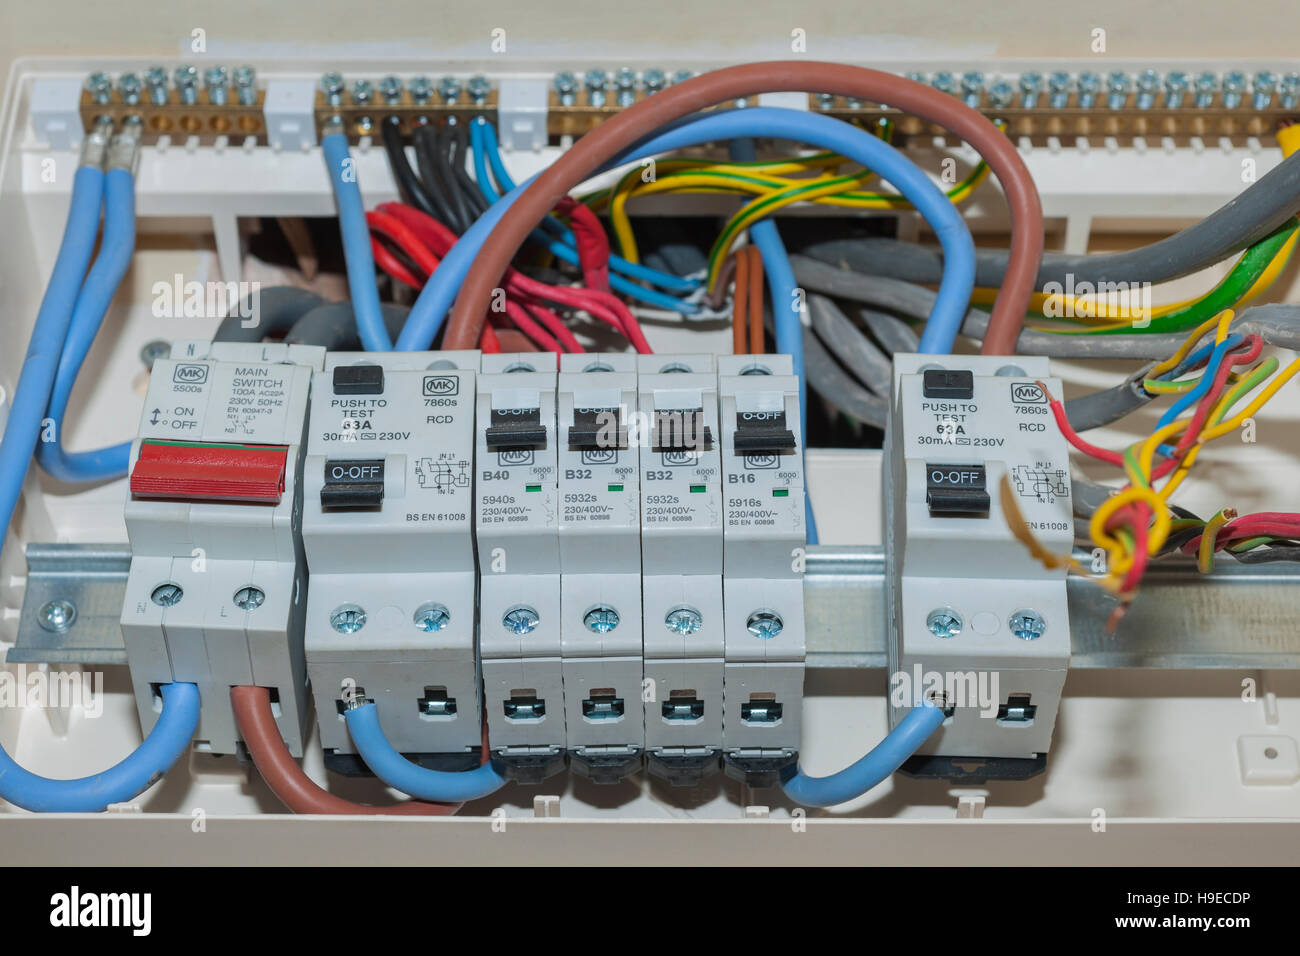 a rcd fuse box in the uk H9ECDP a rcd fuse box in the uk stock photo, royalty free image rcd fuse box at virtualis.co